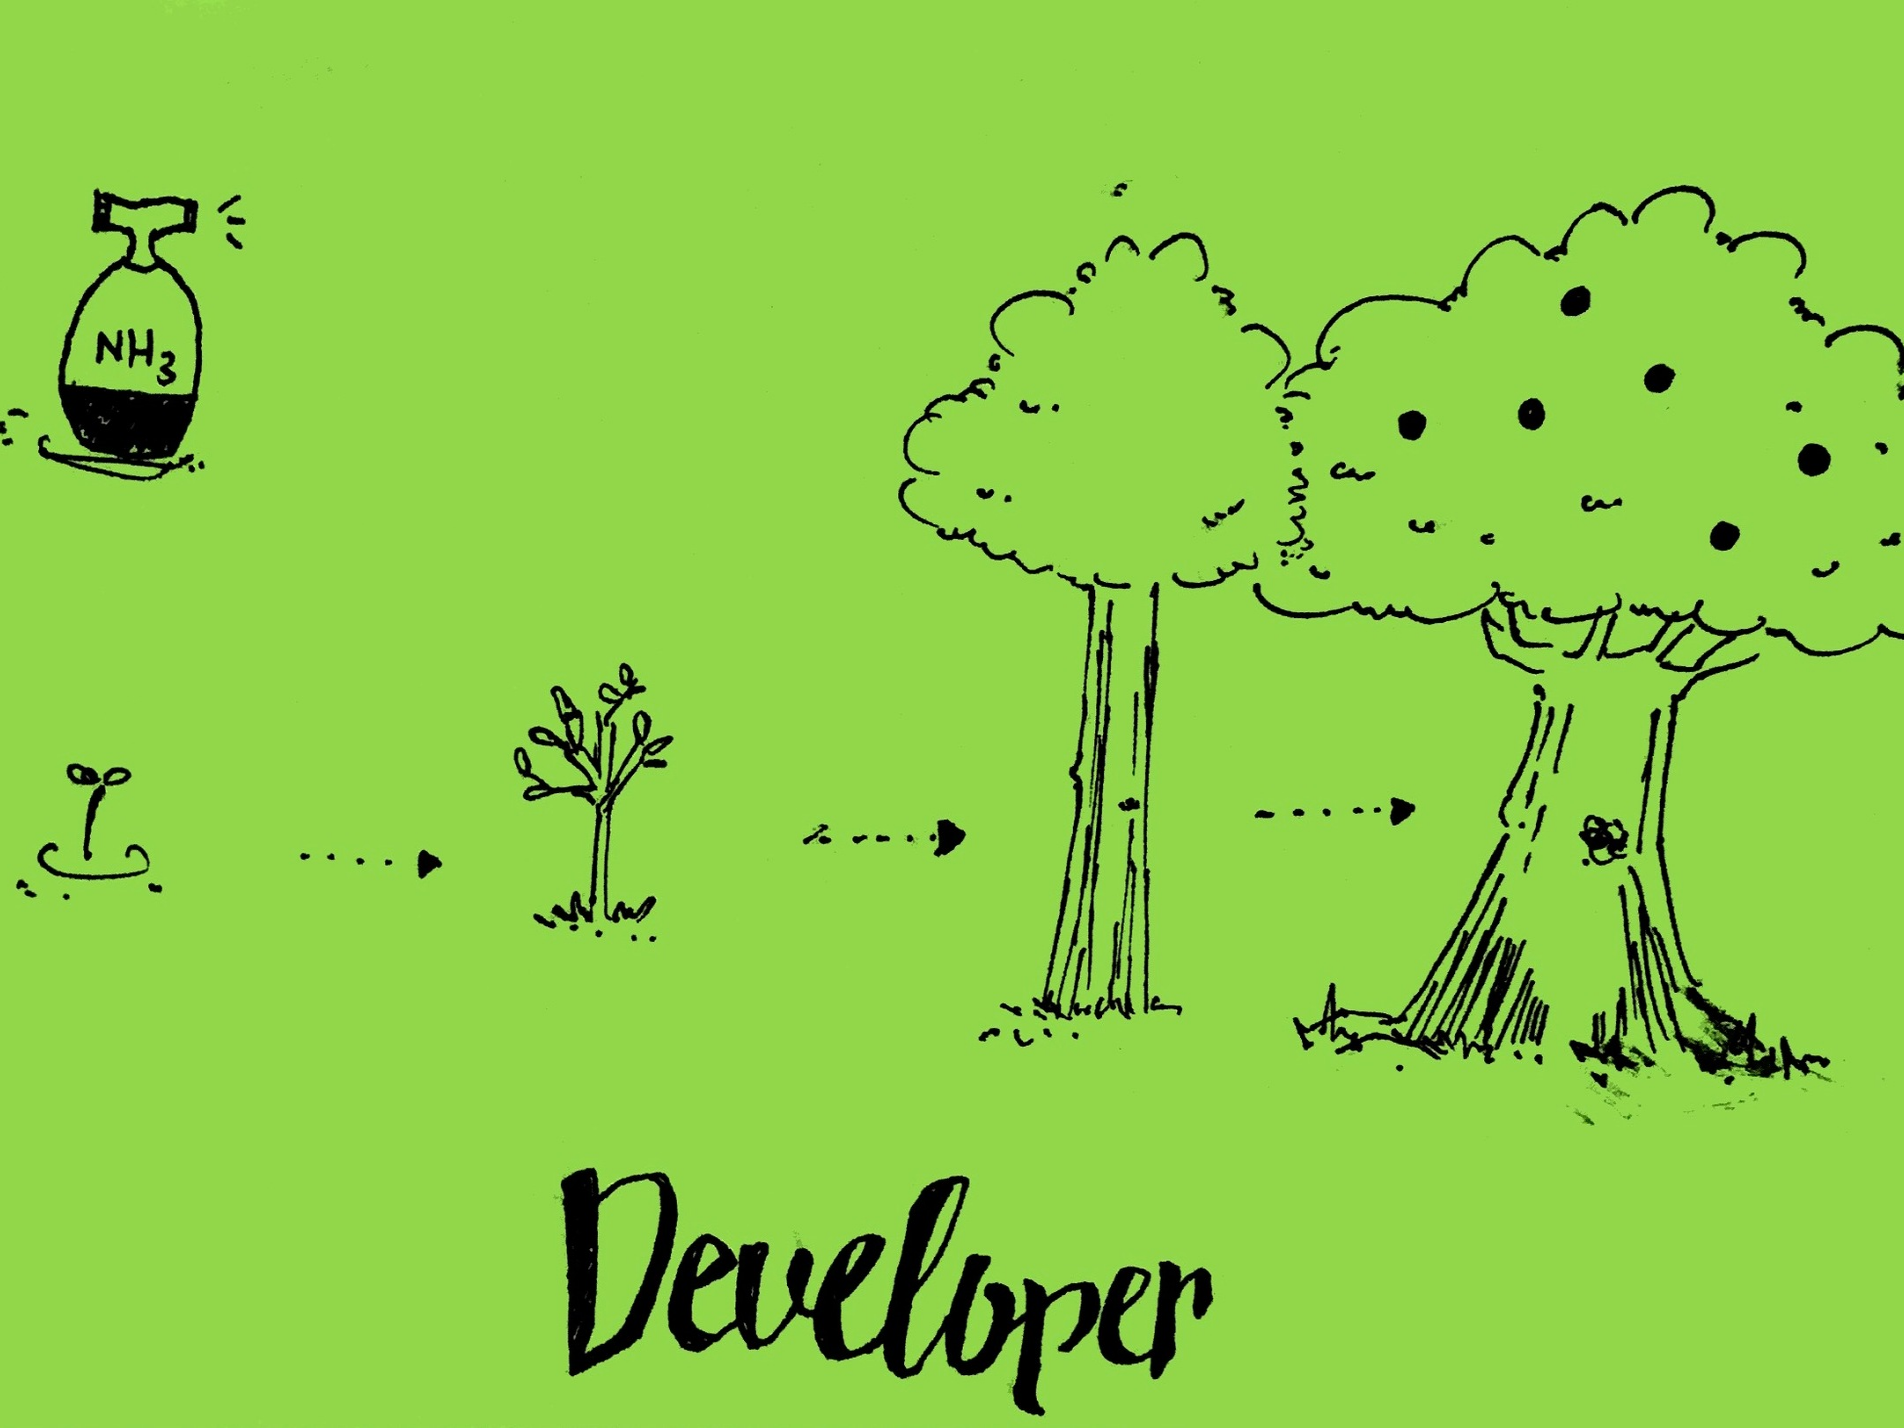 Developer Strengthsfinder Watering Trees with NH3